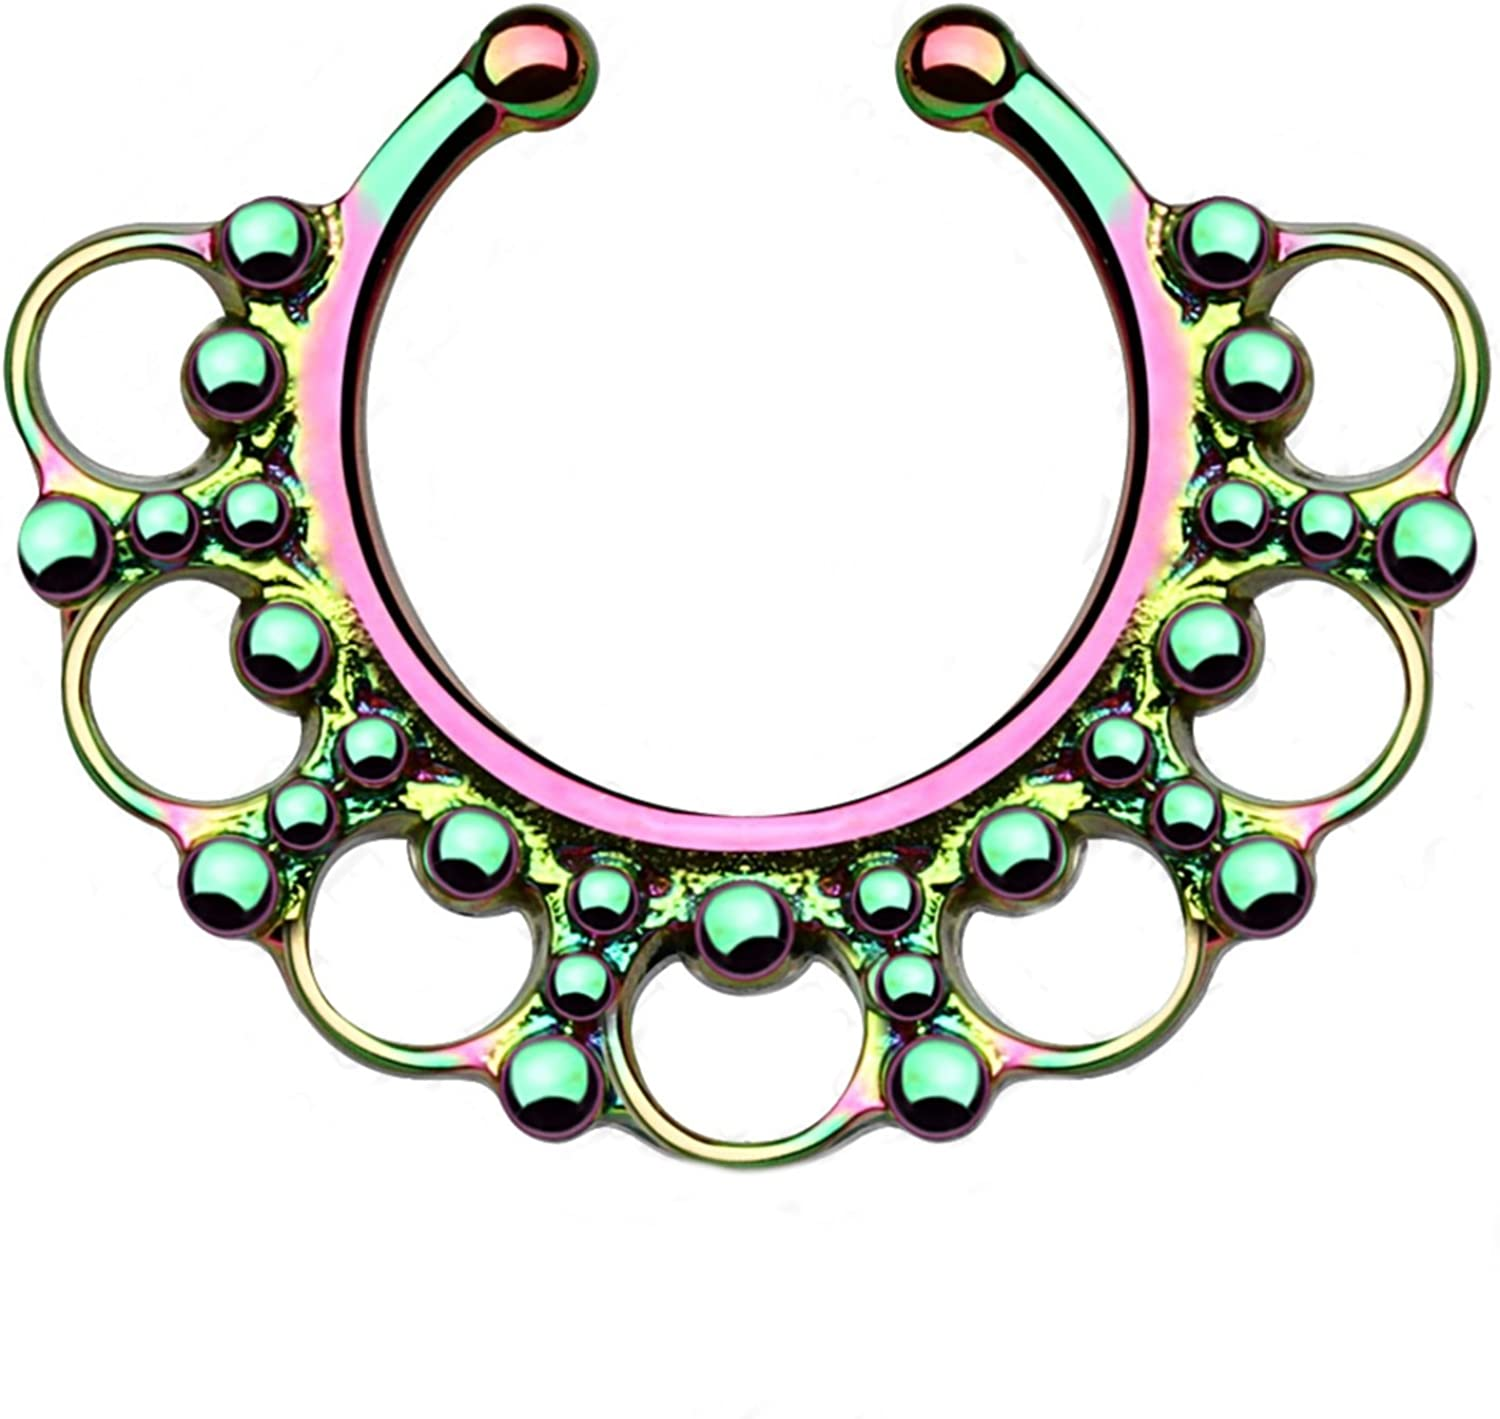 Surgical Steel Ornate Tribal Style Septum Hanger Non-Piercing Clip On Jewelry 3 Colors Available